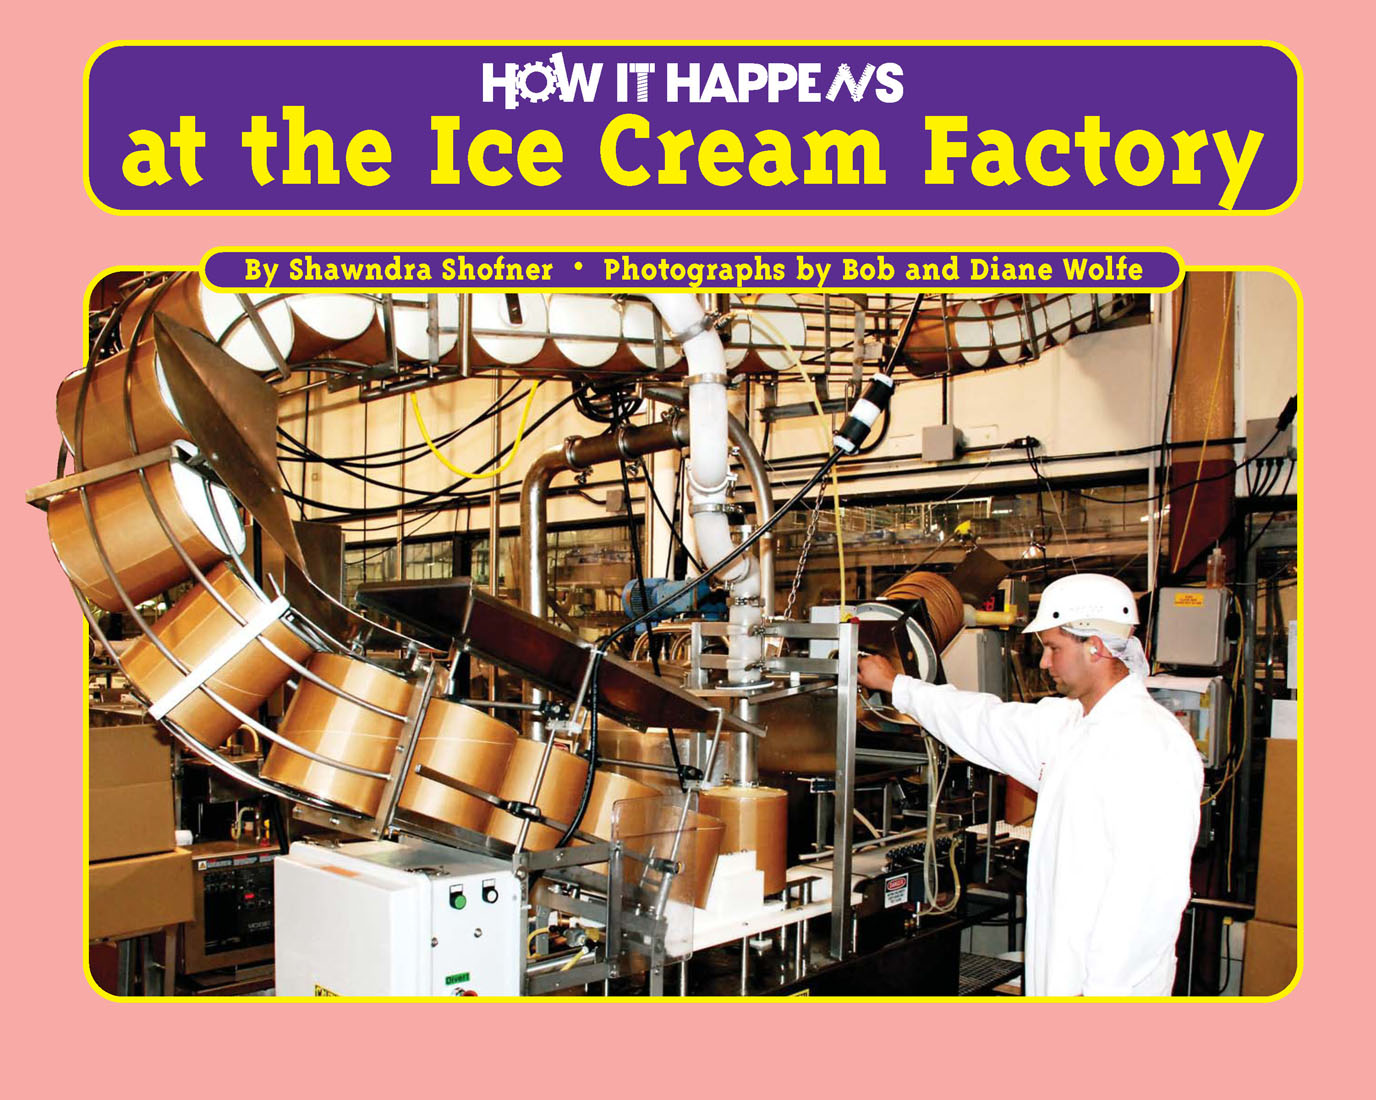 How it Happens at the Ice Cream Factory By Shawndra Shofner